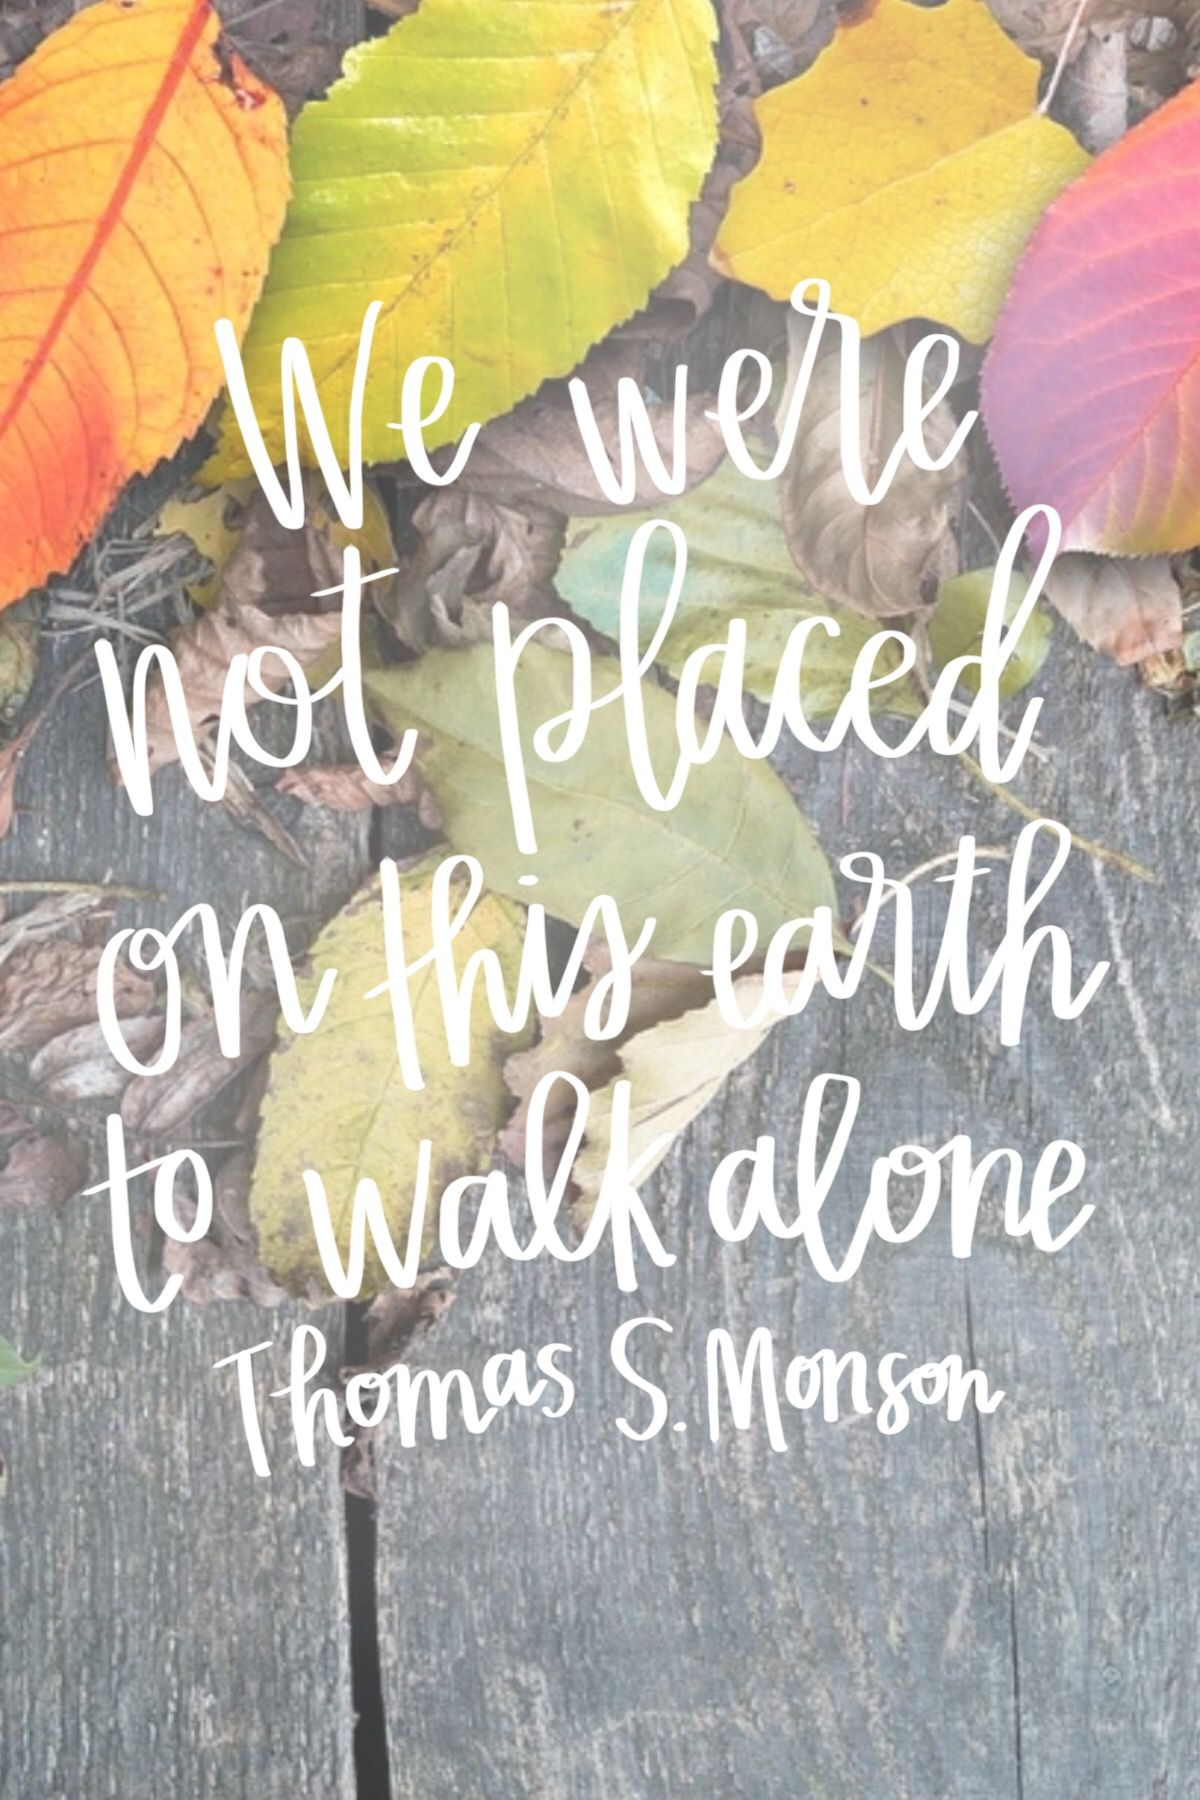 "Mormon Quotes Classy We Were Not Placed On This Earth To Walk Alone"" Thomas Smonson"